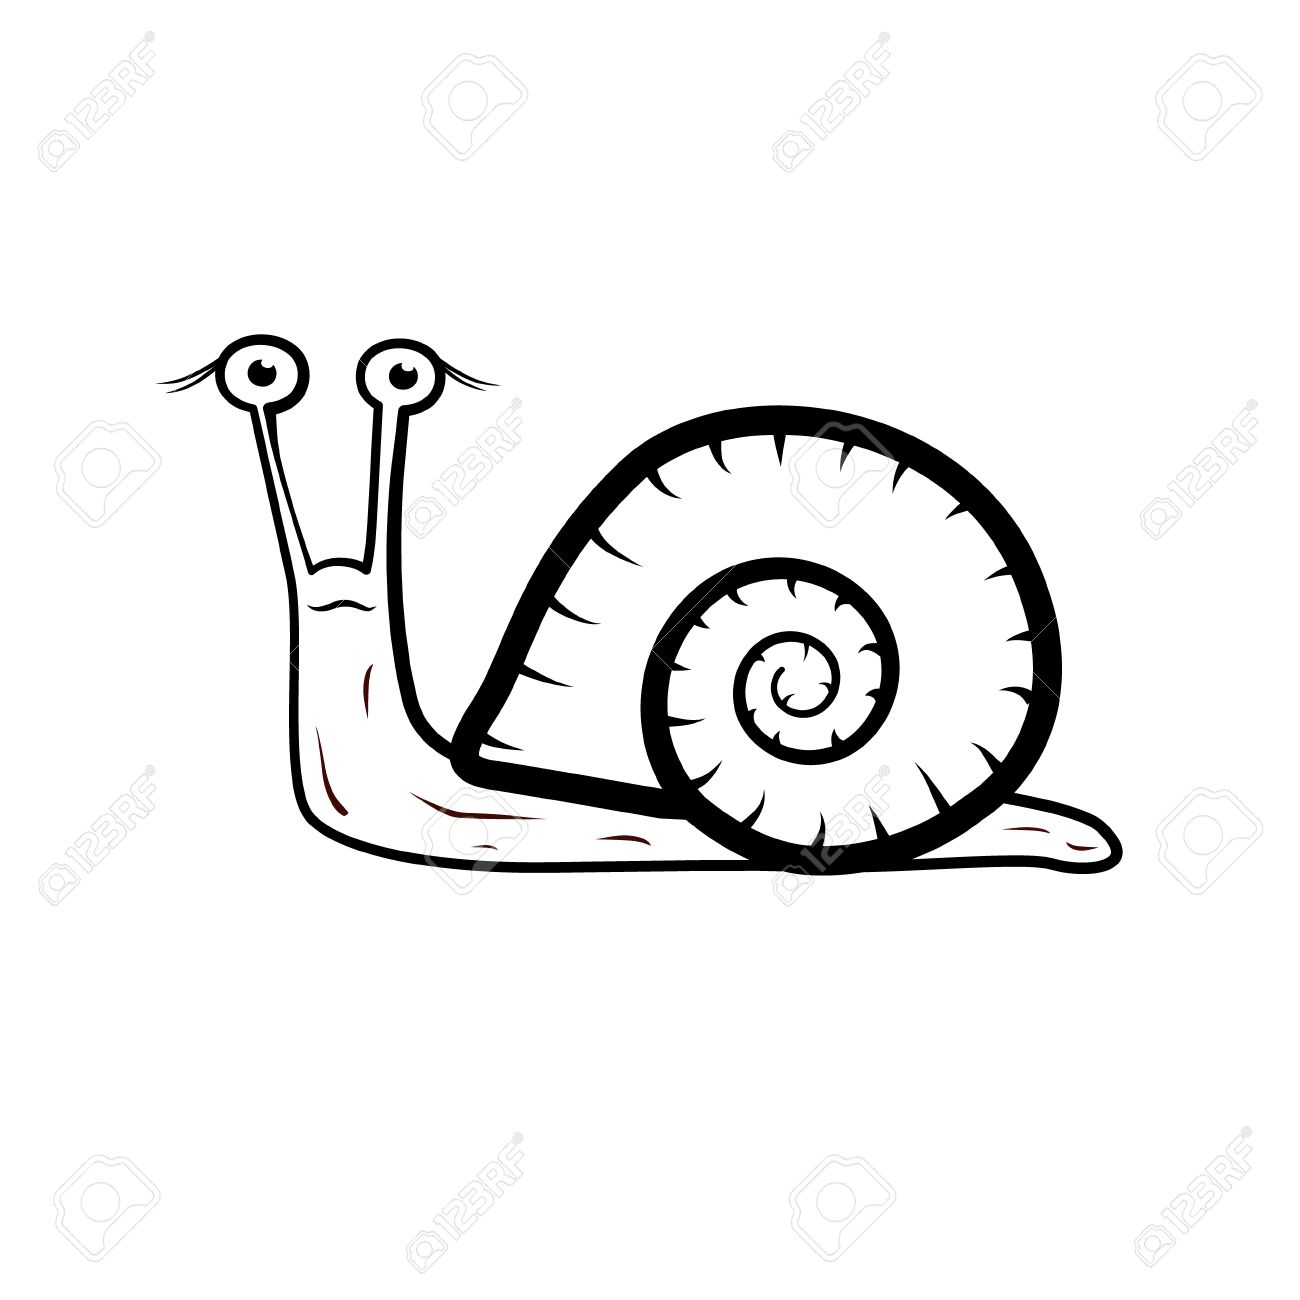 hight resolution of snail illustration isolated on white background stock vector 24472598